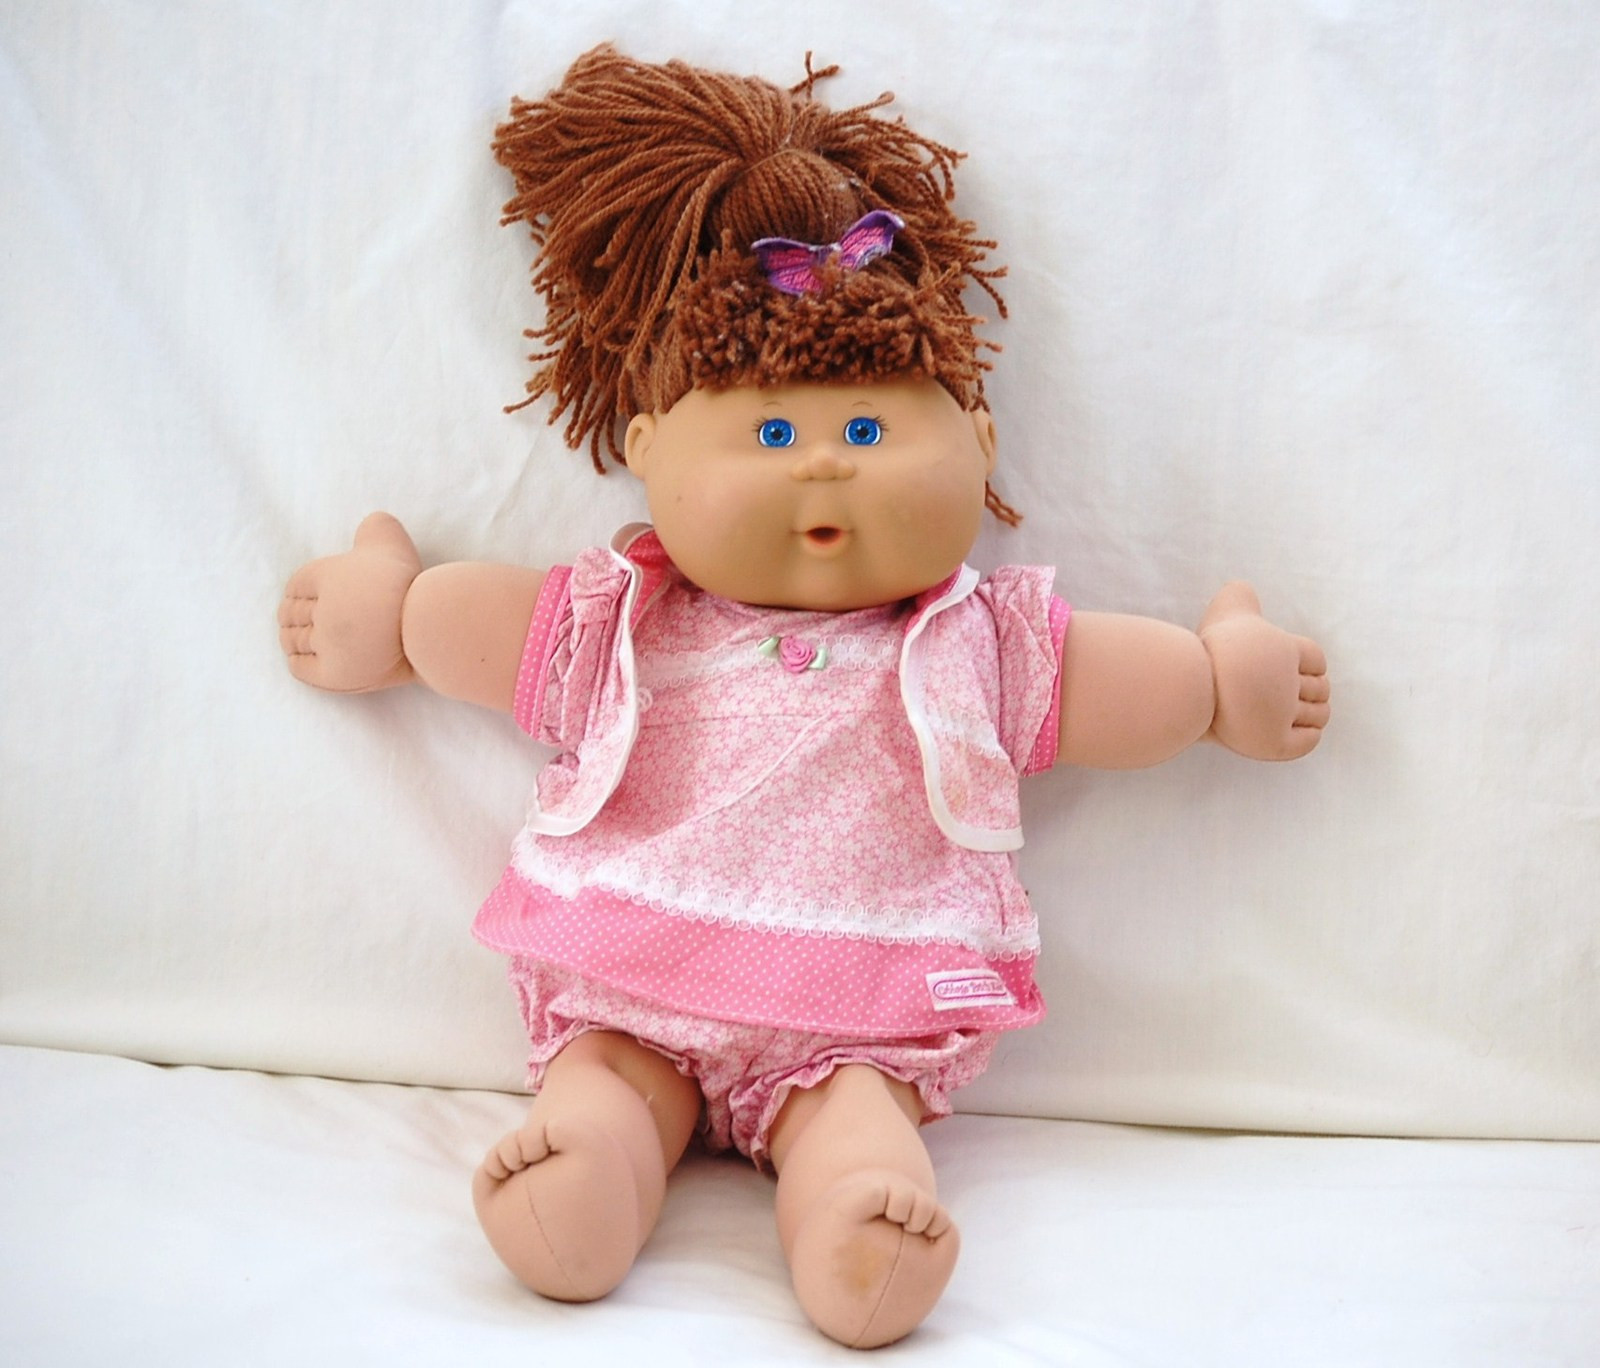 Cabbage Patch Doll Beautiful Cabbage Patch Kid Vintage Doll 2004 original and 14 Of Superb 40 Models Cabbage Patch Doll